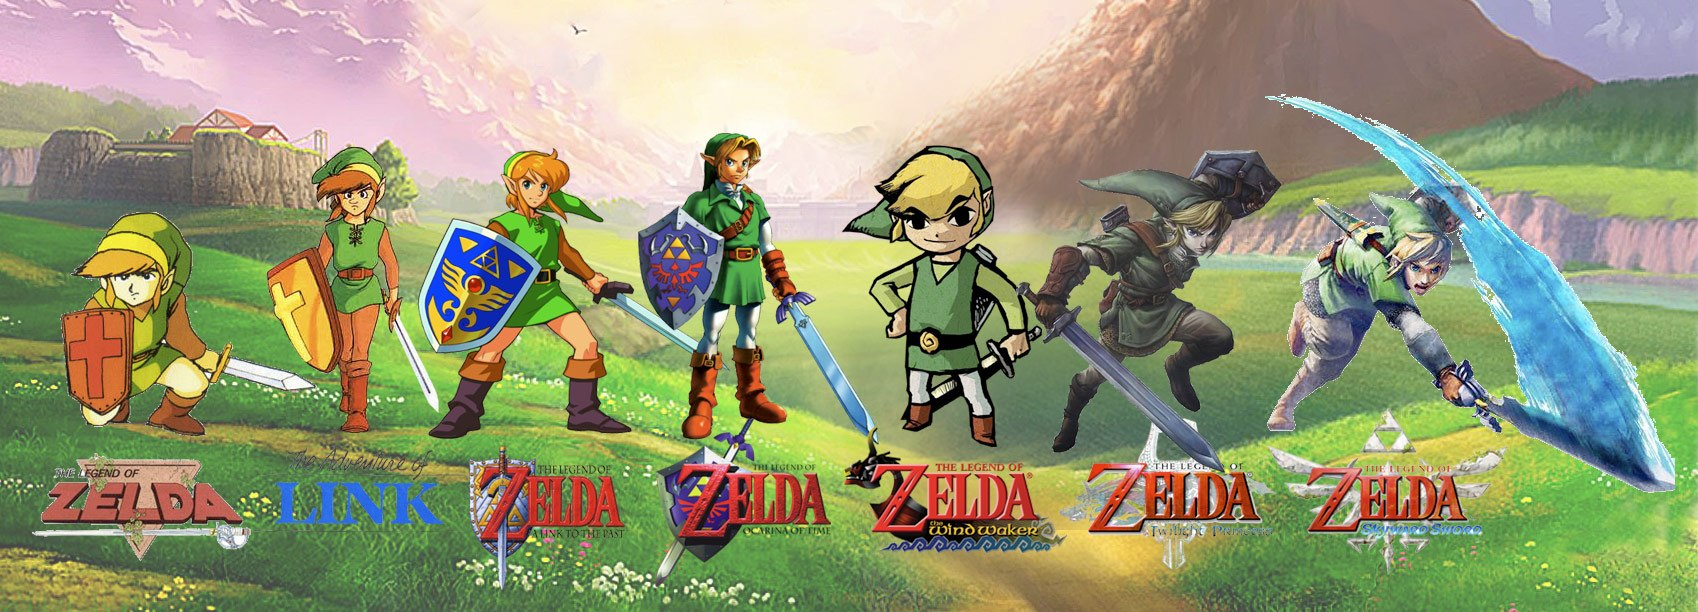 zelda links